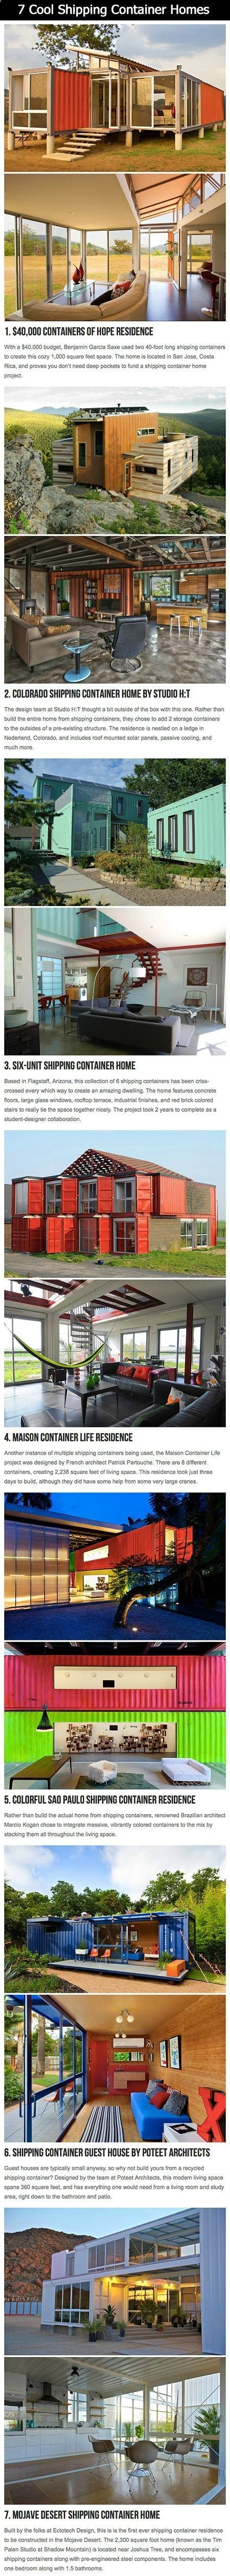 Container House - 7 Extremely Cool and Creative Shipping Container Homes - Who Else Wants Simple Step-By-Step Plans To Design And Build A Container Home From Scratch?